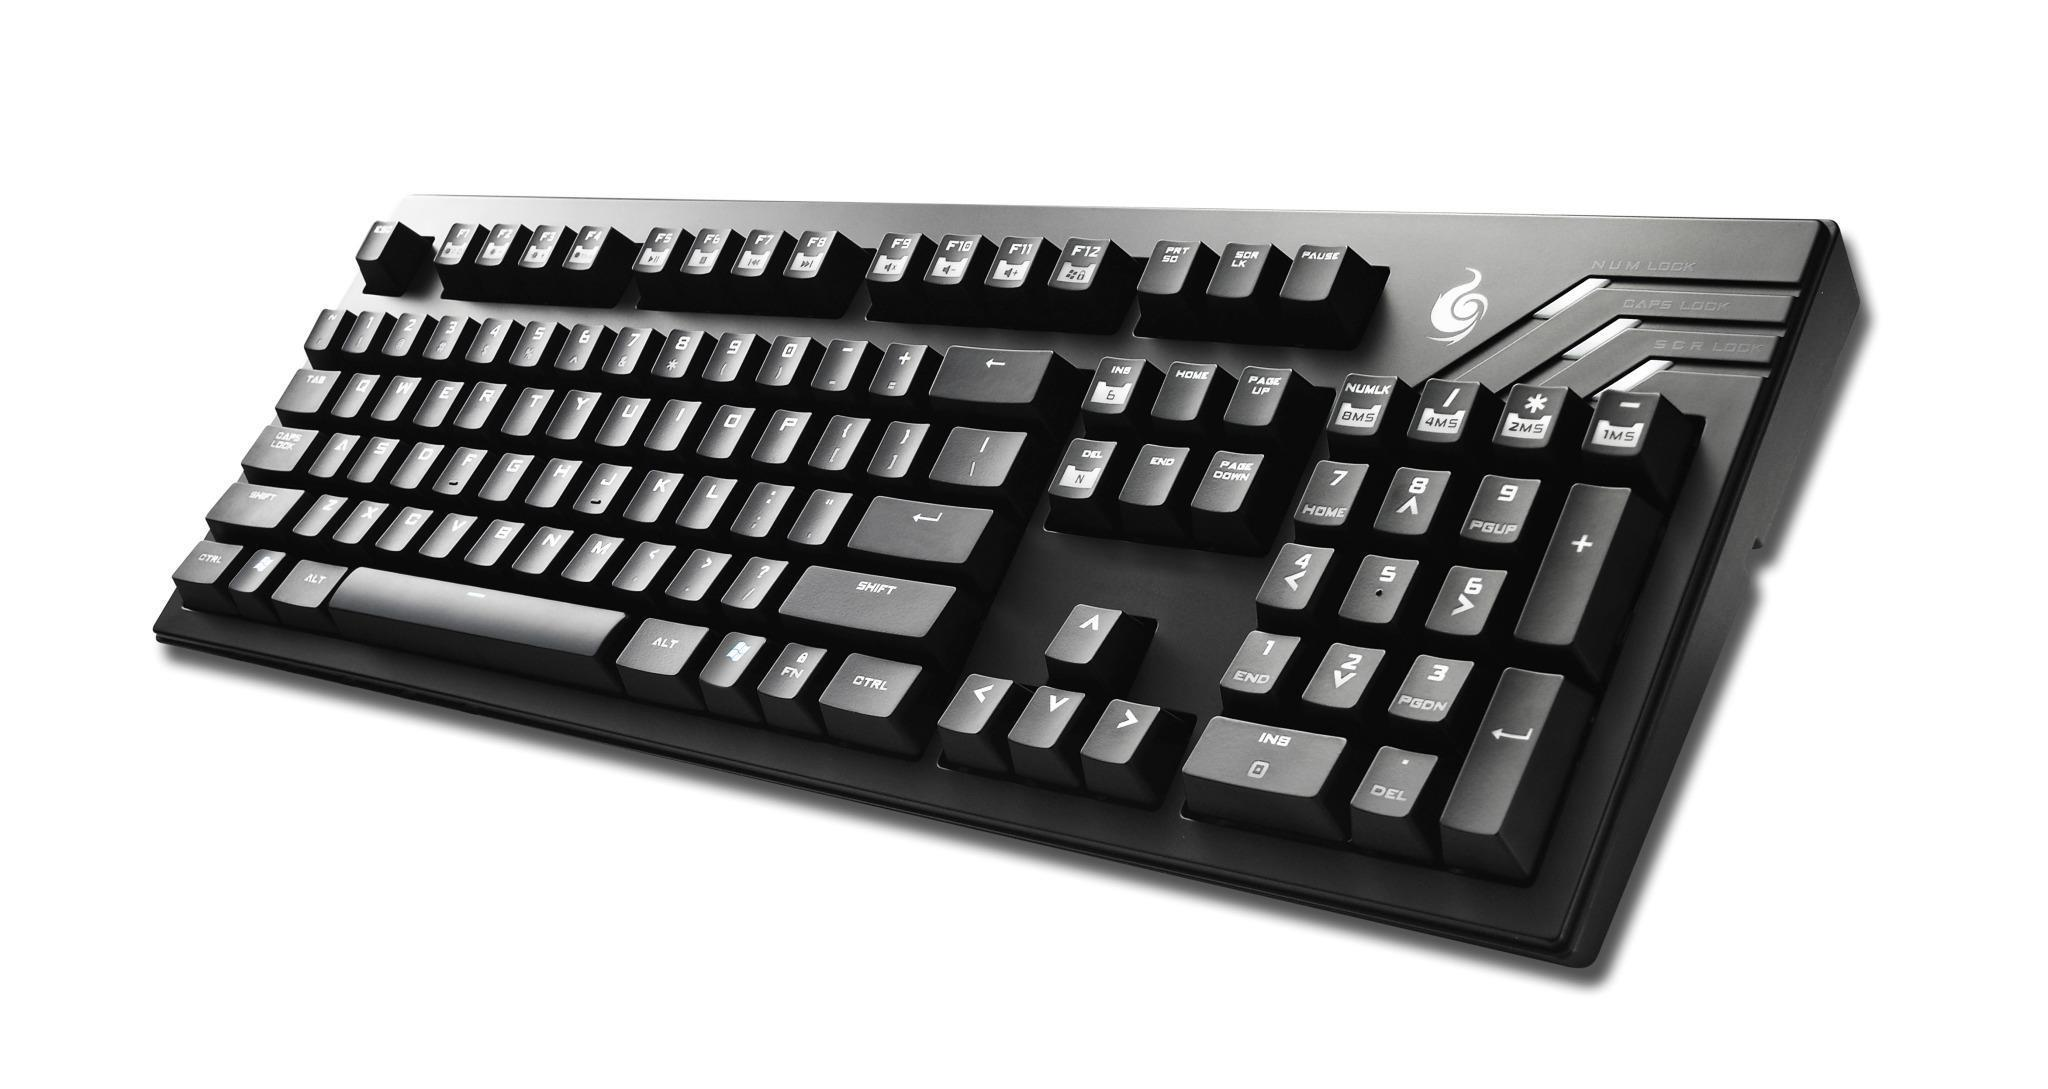 Cooler Master CM Storm Quick Fire Ultimate Mechanical Gaming Keyboard